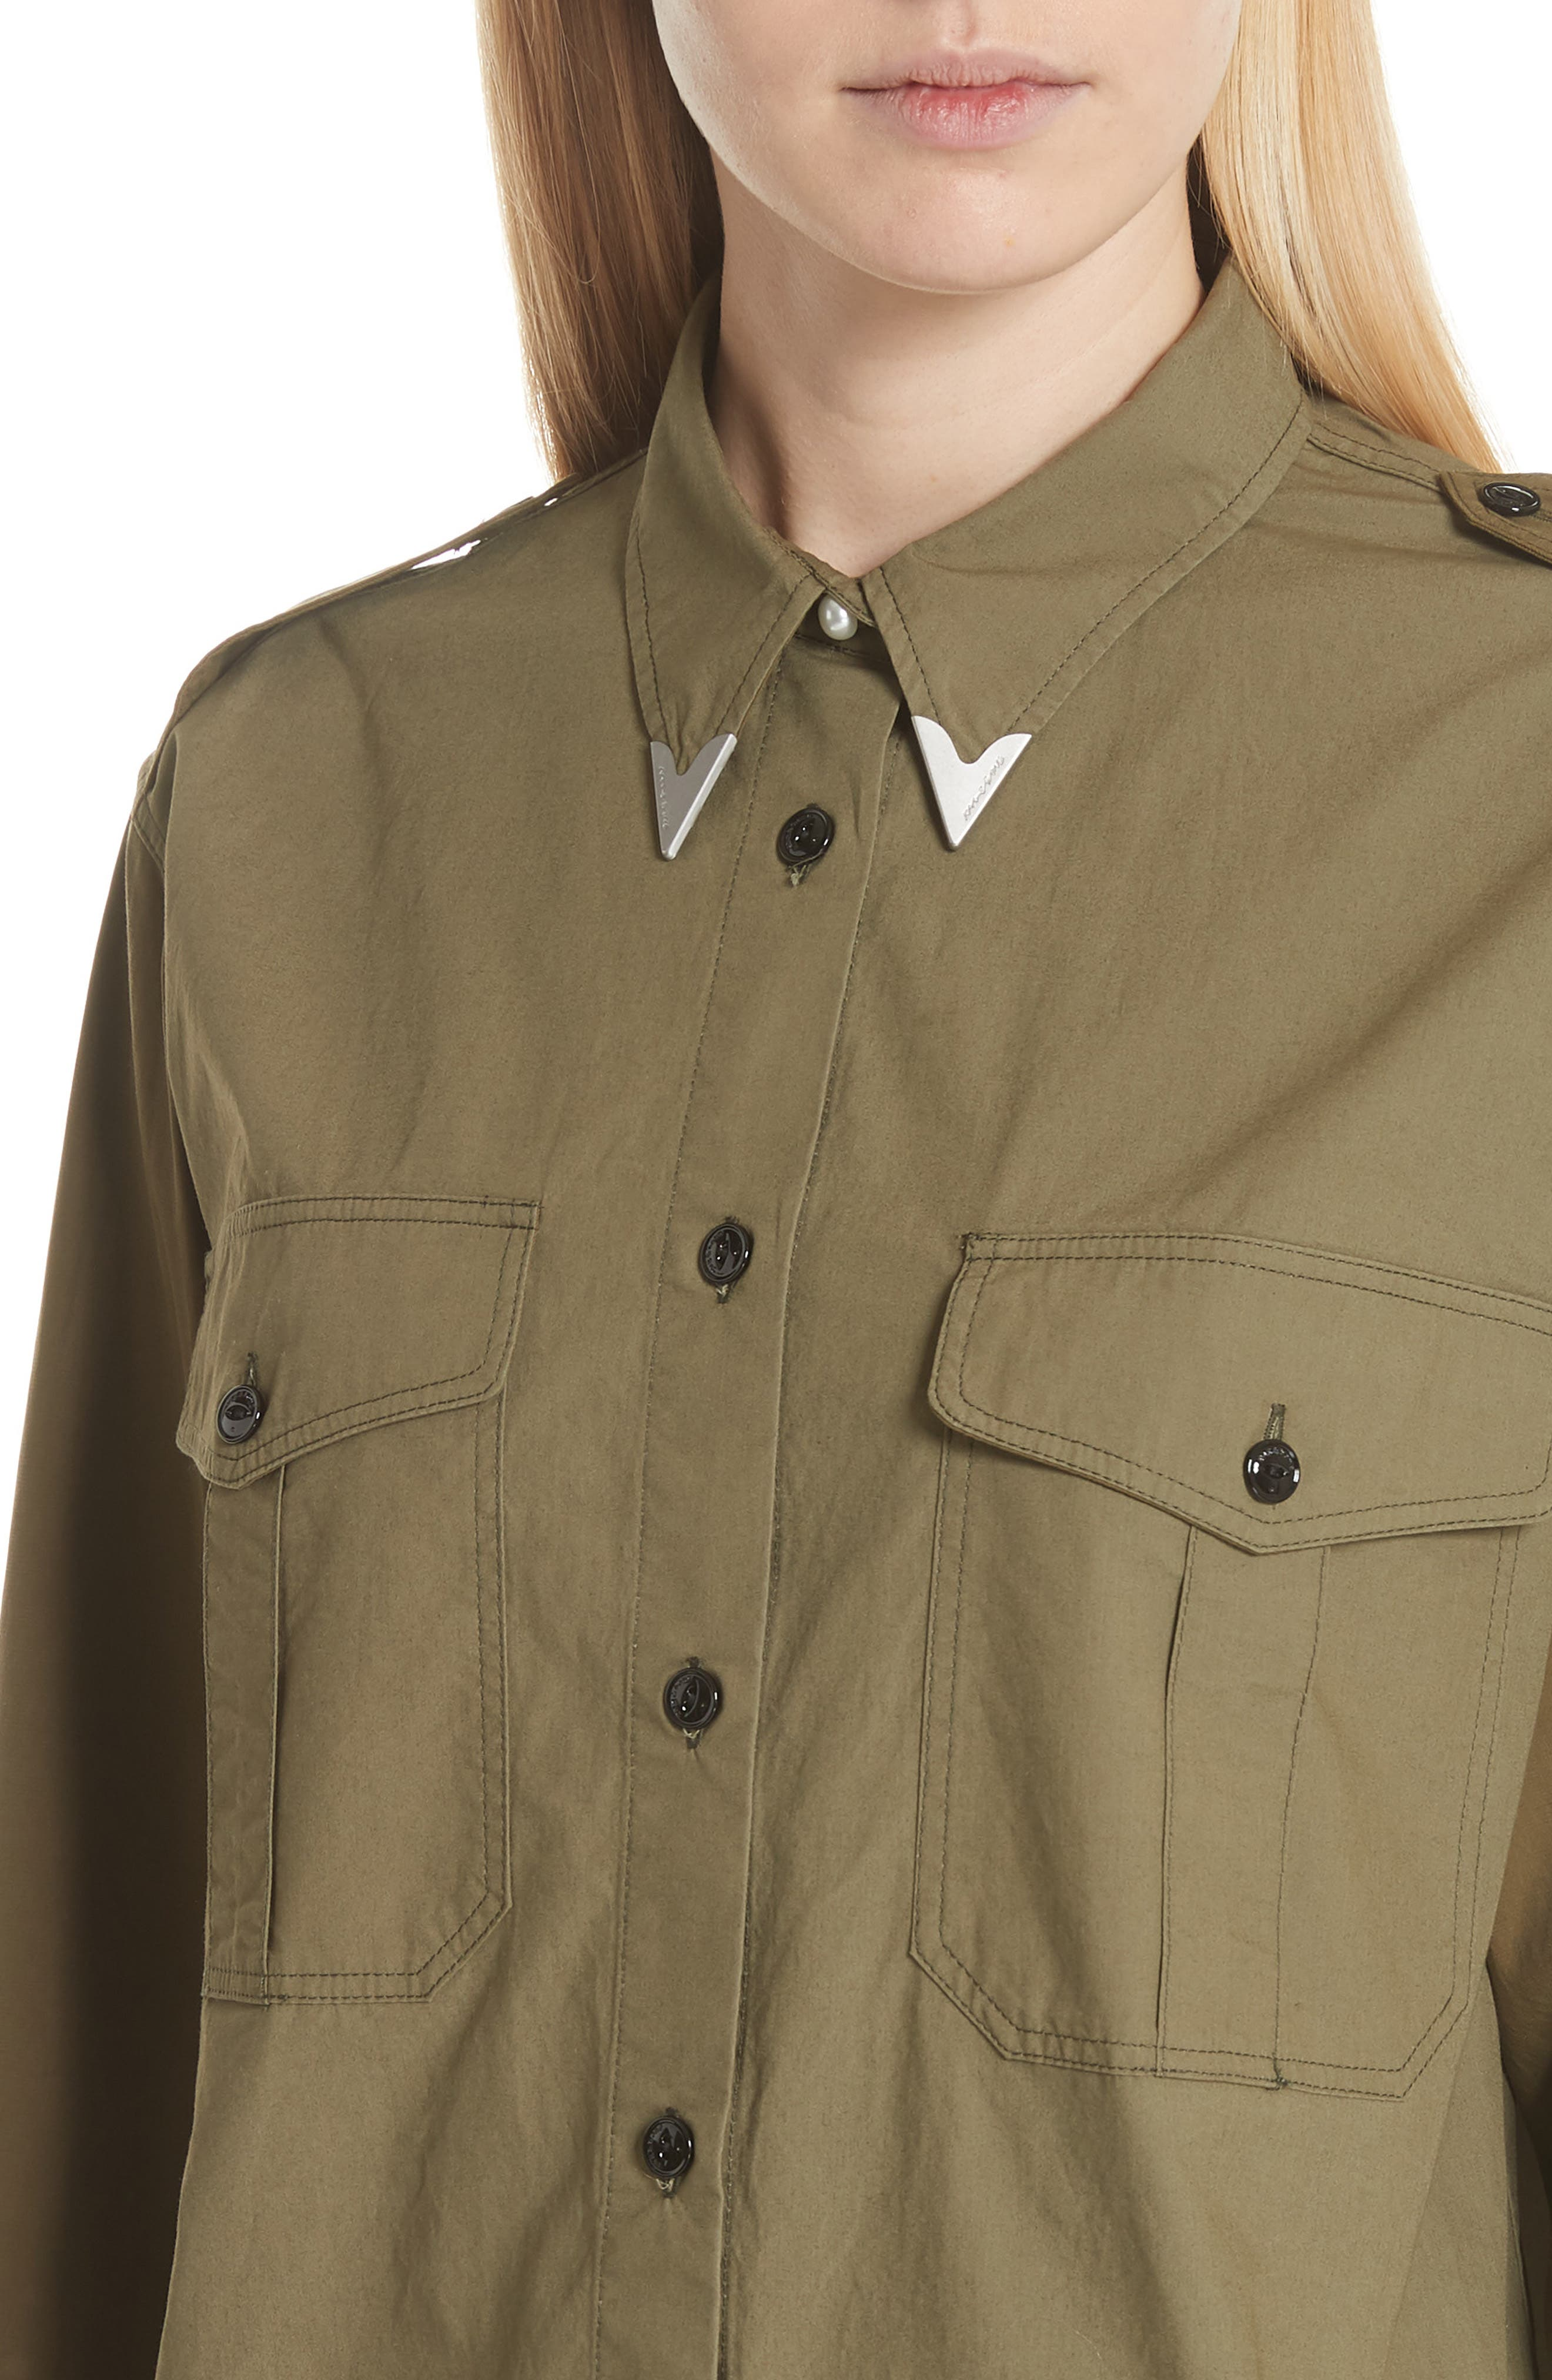 Pearson Shirt,                             Alternate thumbnail 4, color,                             Dusty Olive